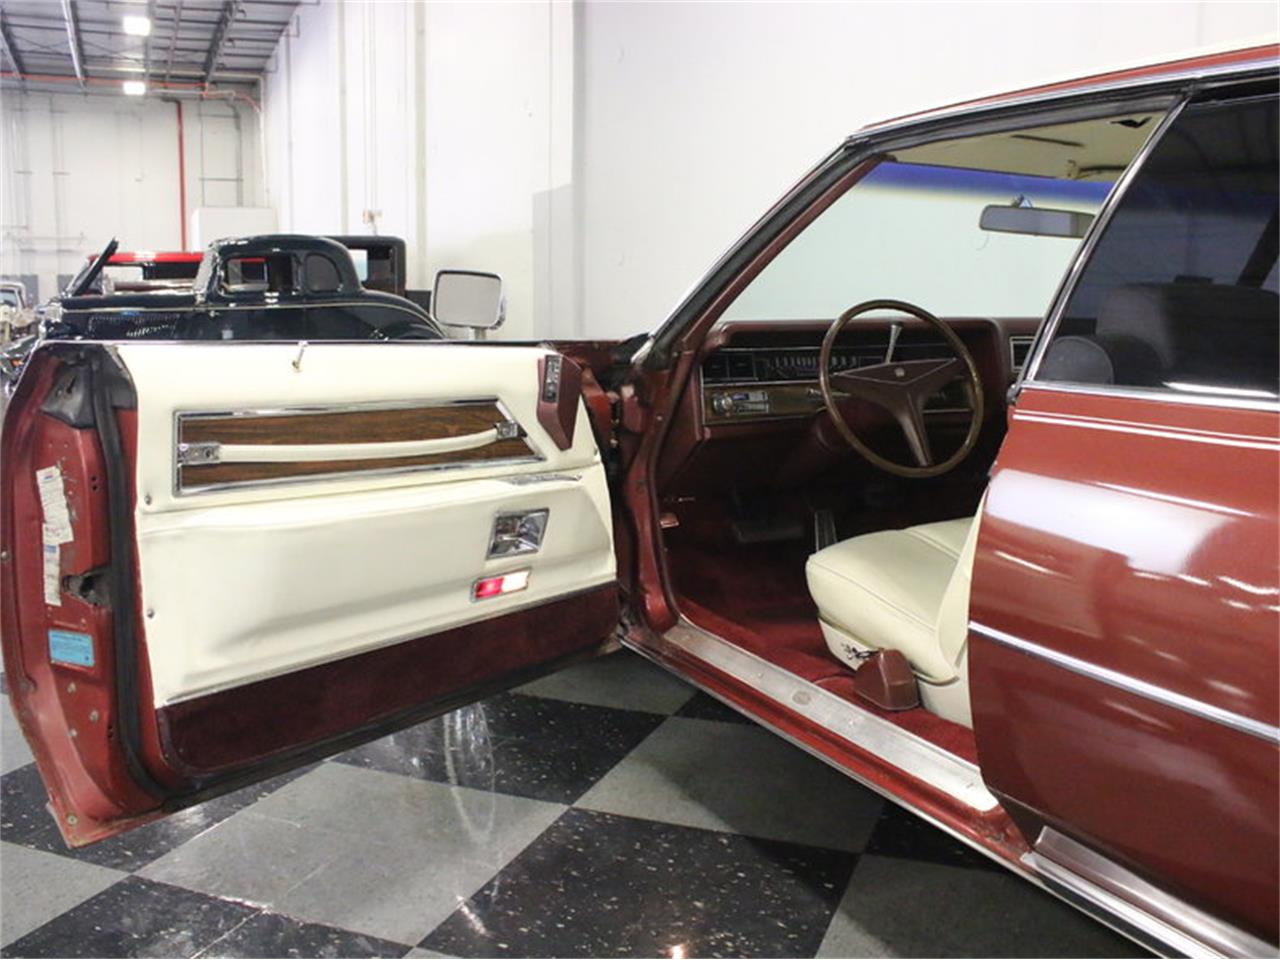 Large Picture of 1972 Cadillac Coupe DeVille located in Texas - $9,995.00 Offered by Streetside Classics - Dallas / Fort Worth - L1A0